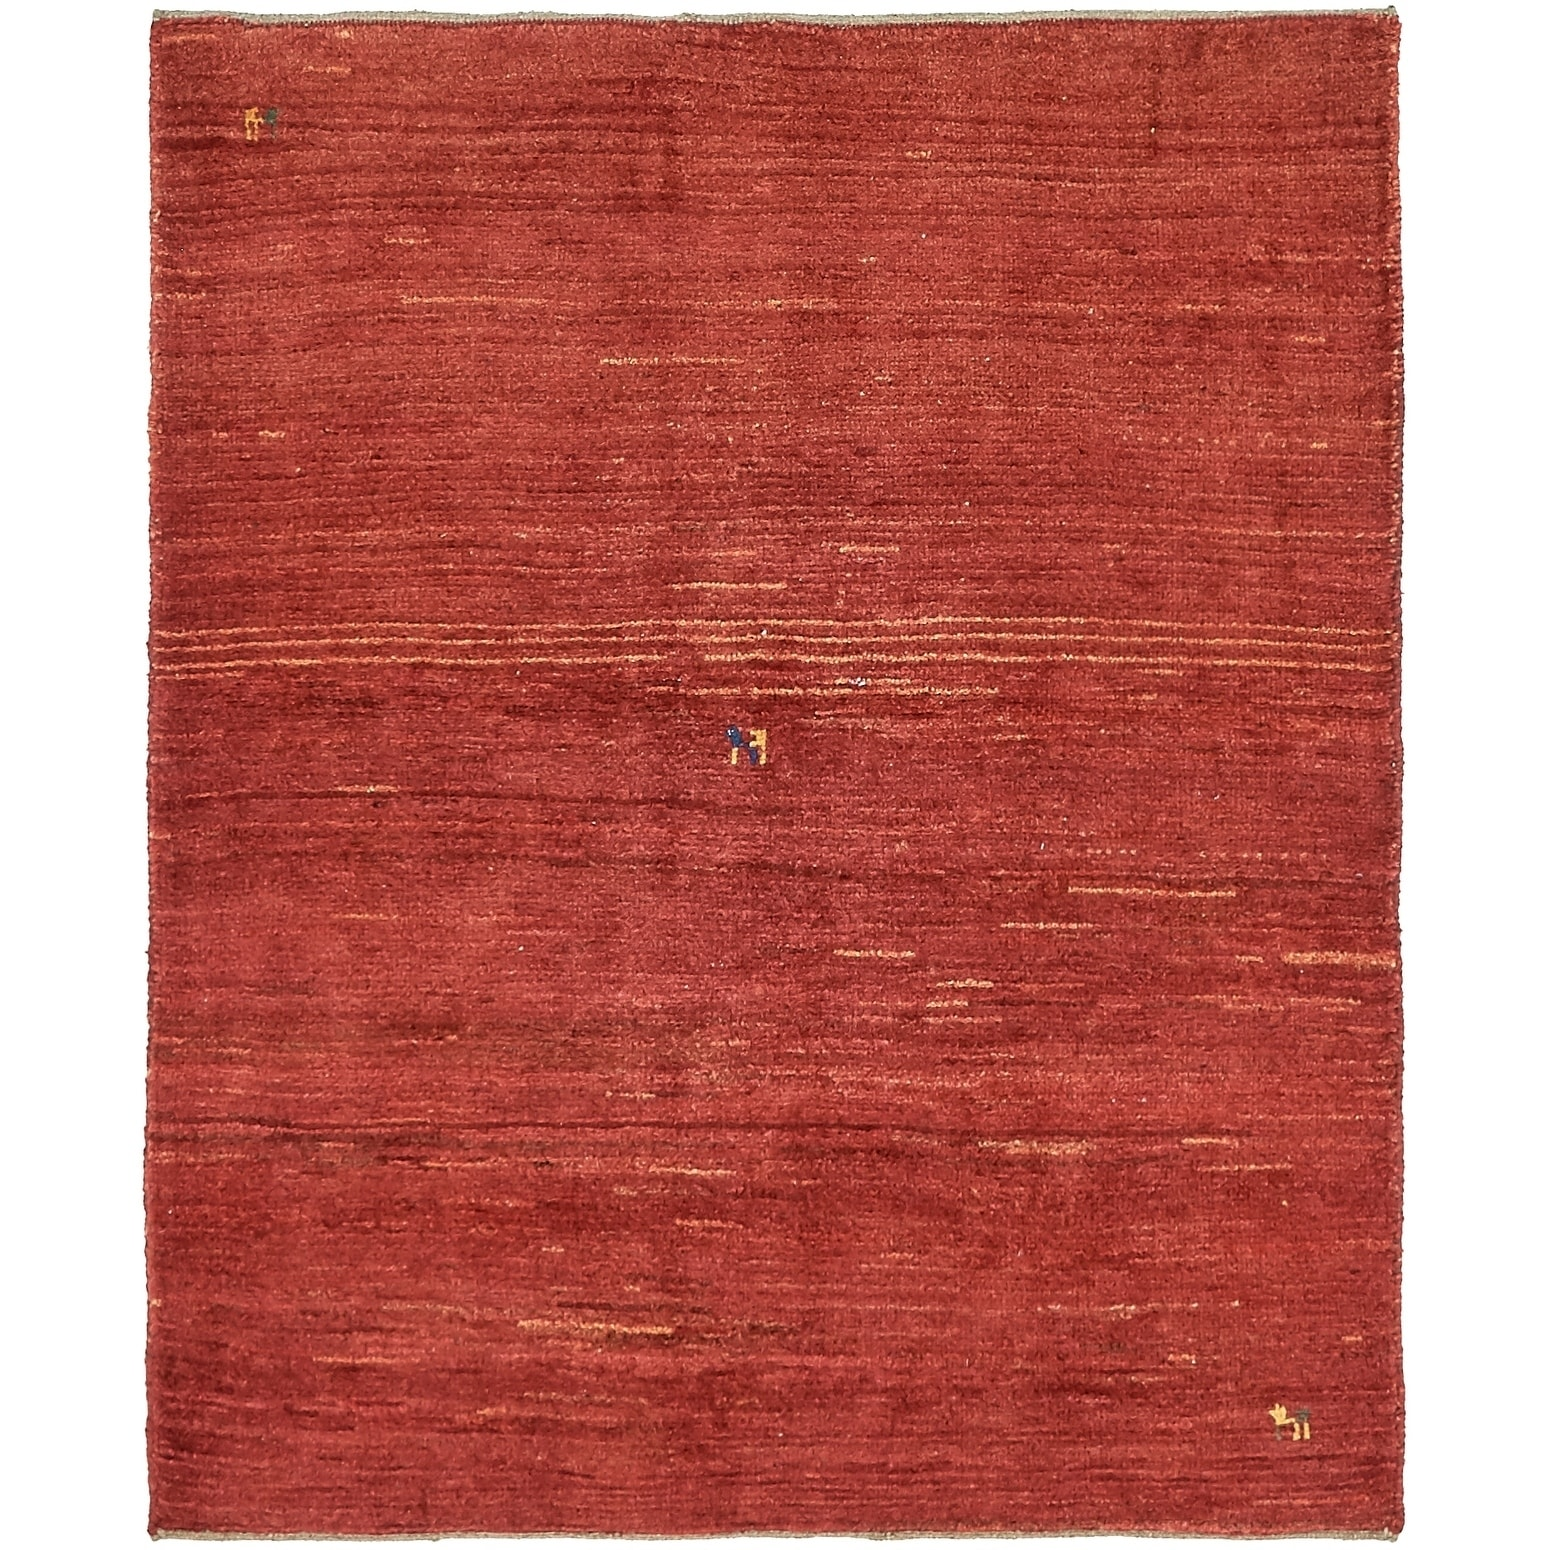 Hand Knotted Kashkuli Gabbeh Wool Area Rug - 4 1 x 5 (Red - 4 1 x 5)